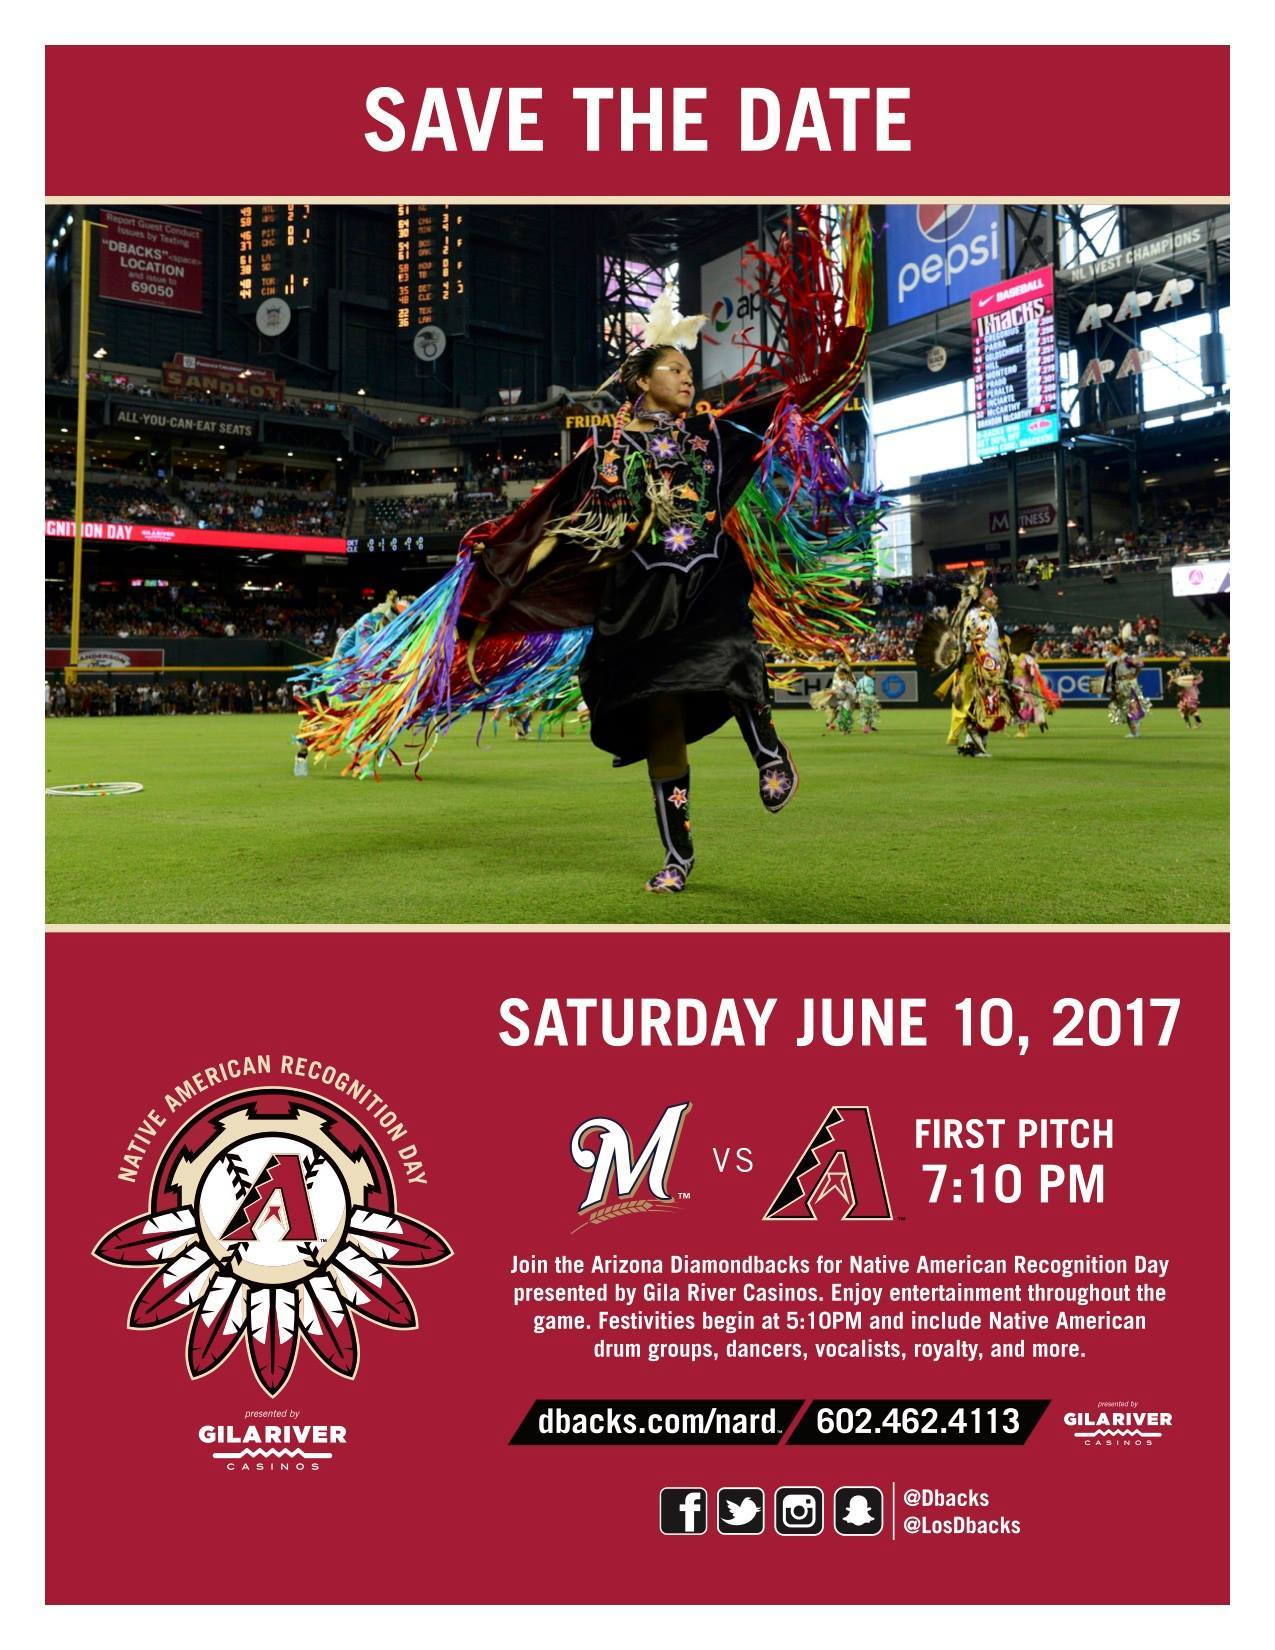 Must attend event in June 2017: Arizona Diamondbacks Native American Recognition Day 2017